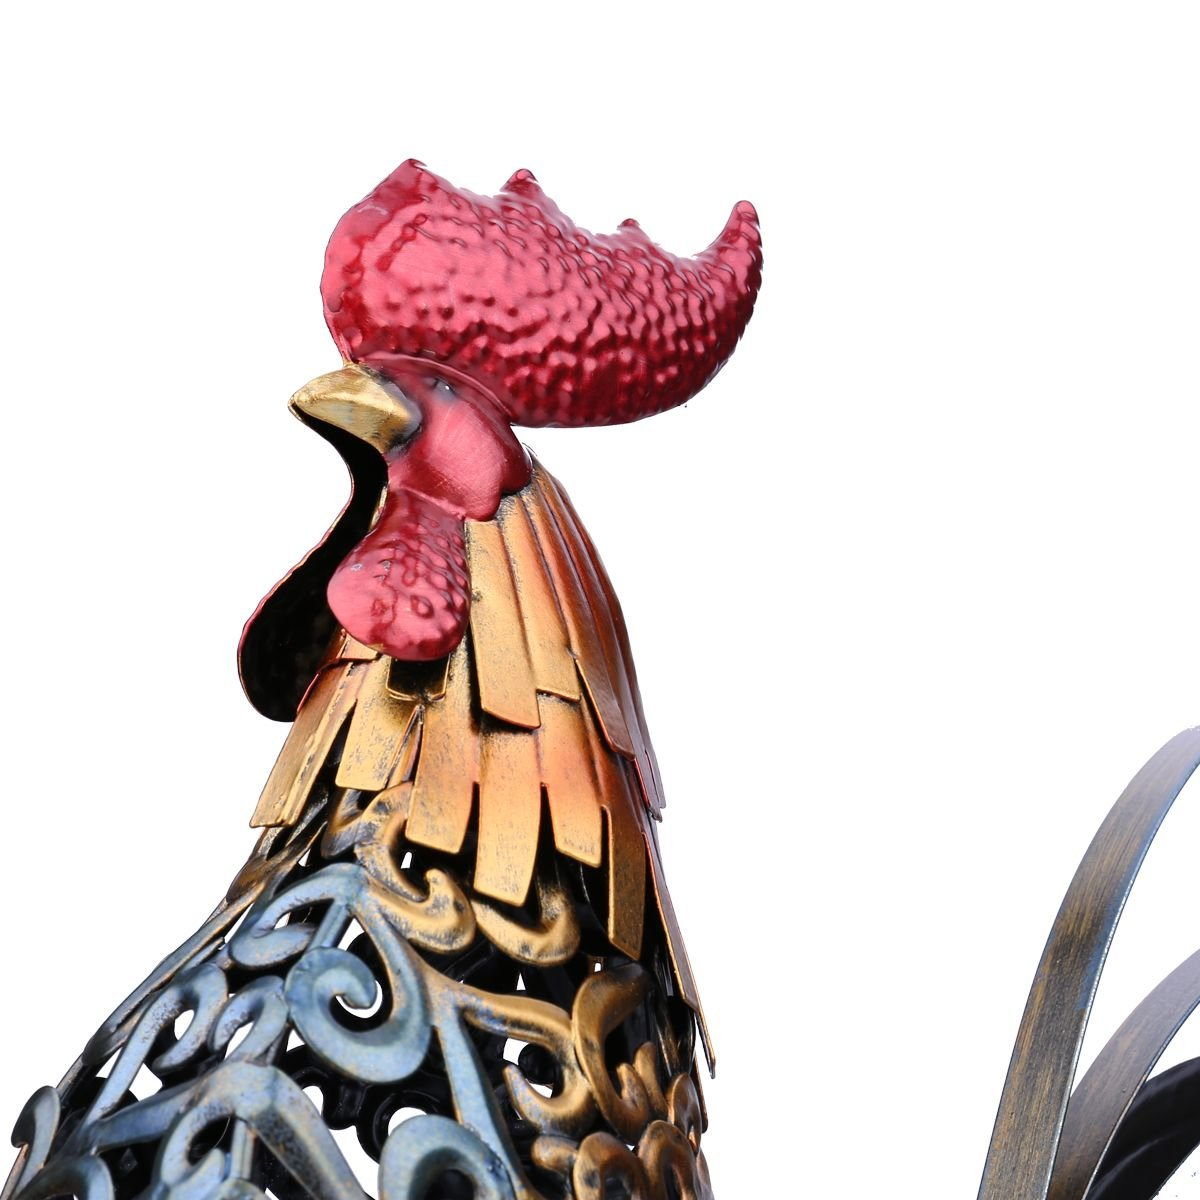 Nisson Home Kitchen - Metal Figurine Home Decor Vivid Colorful Craft Gift for Decoration Accessories